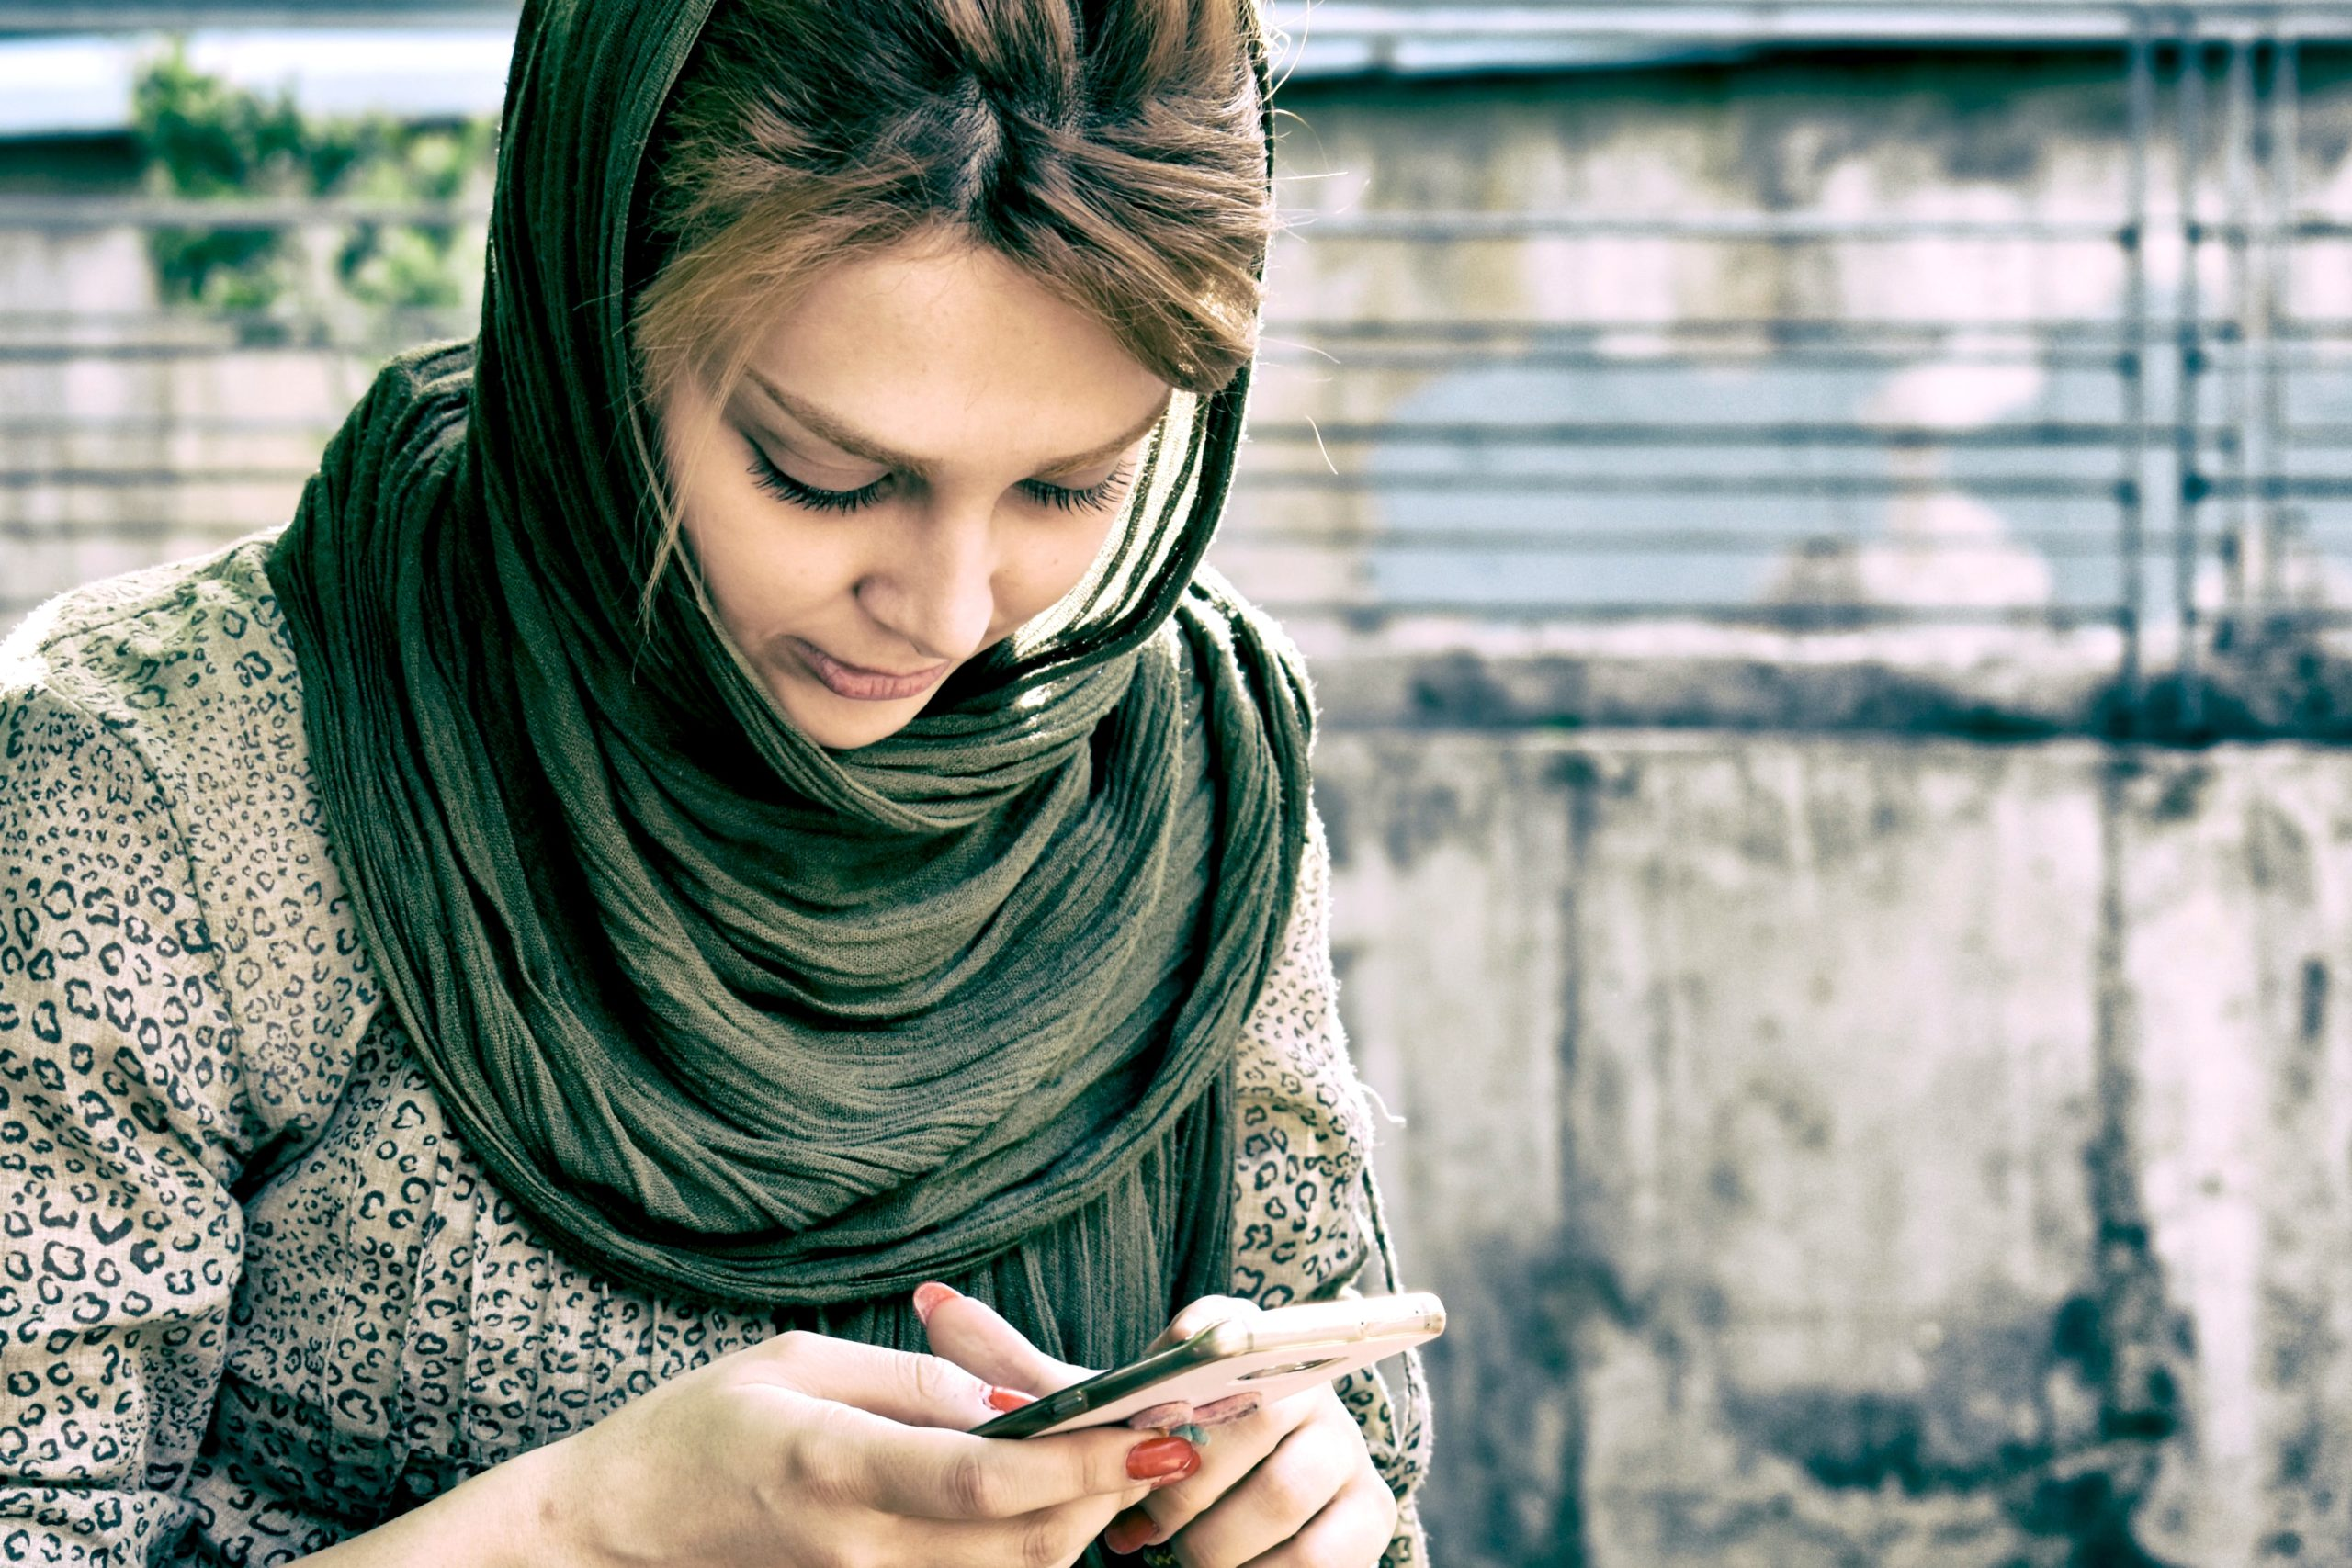 a young person in a headscarf looks at their phone